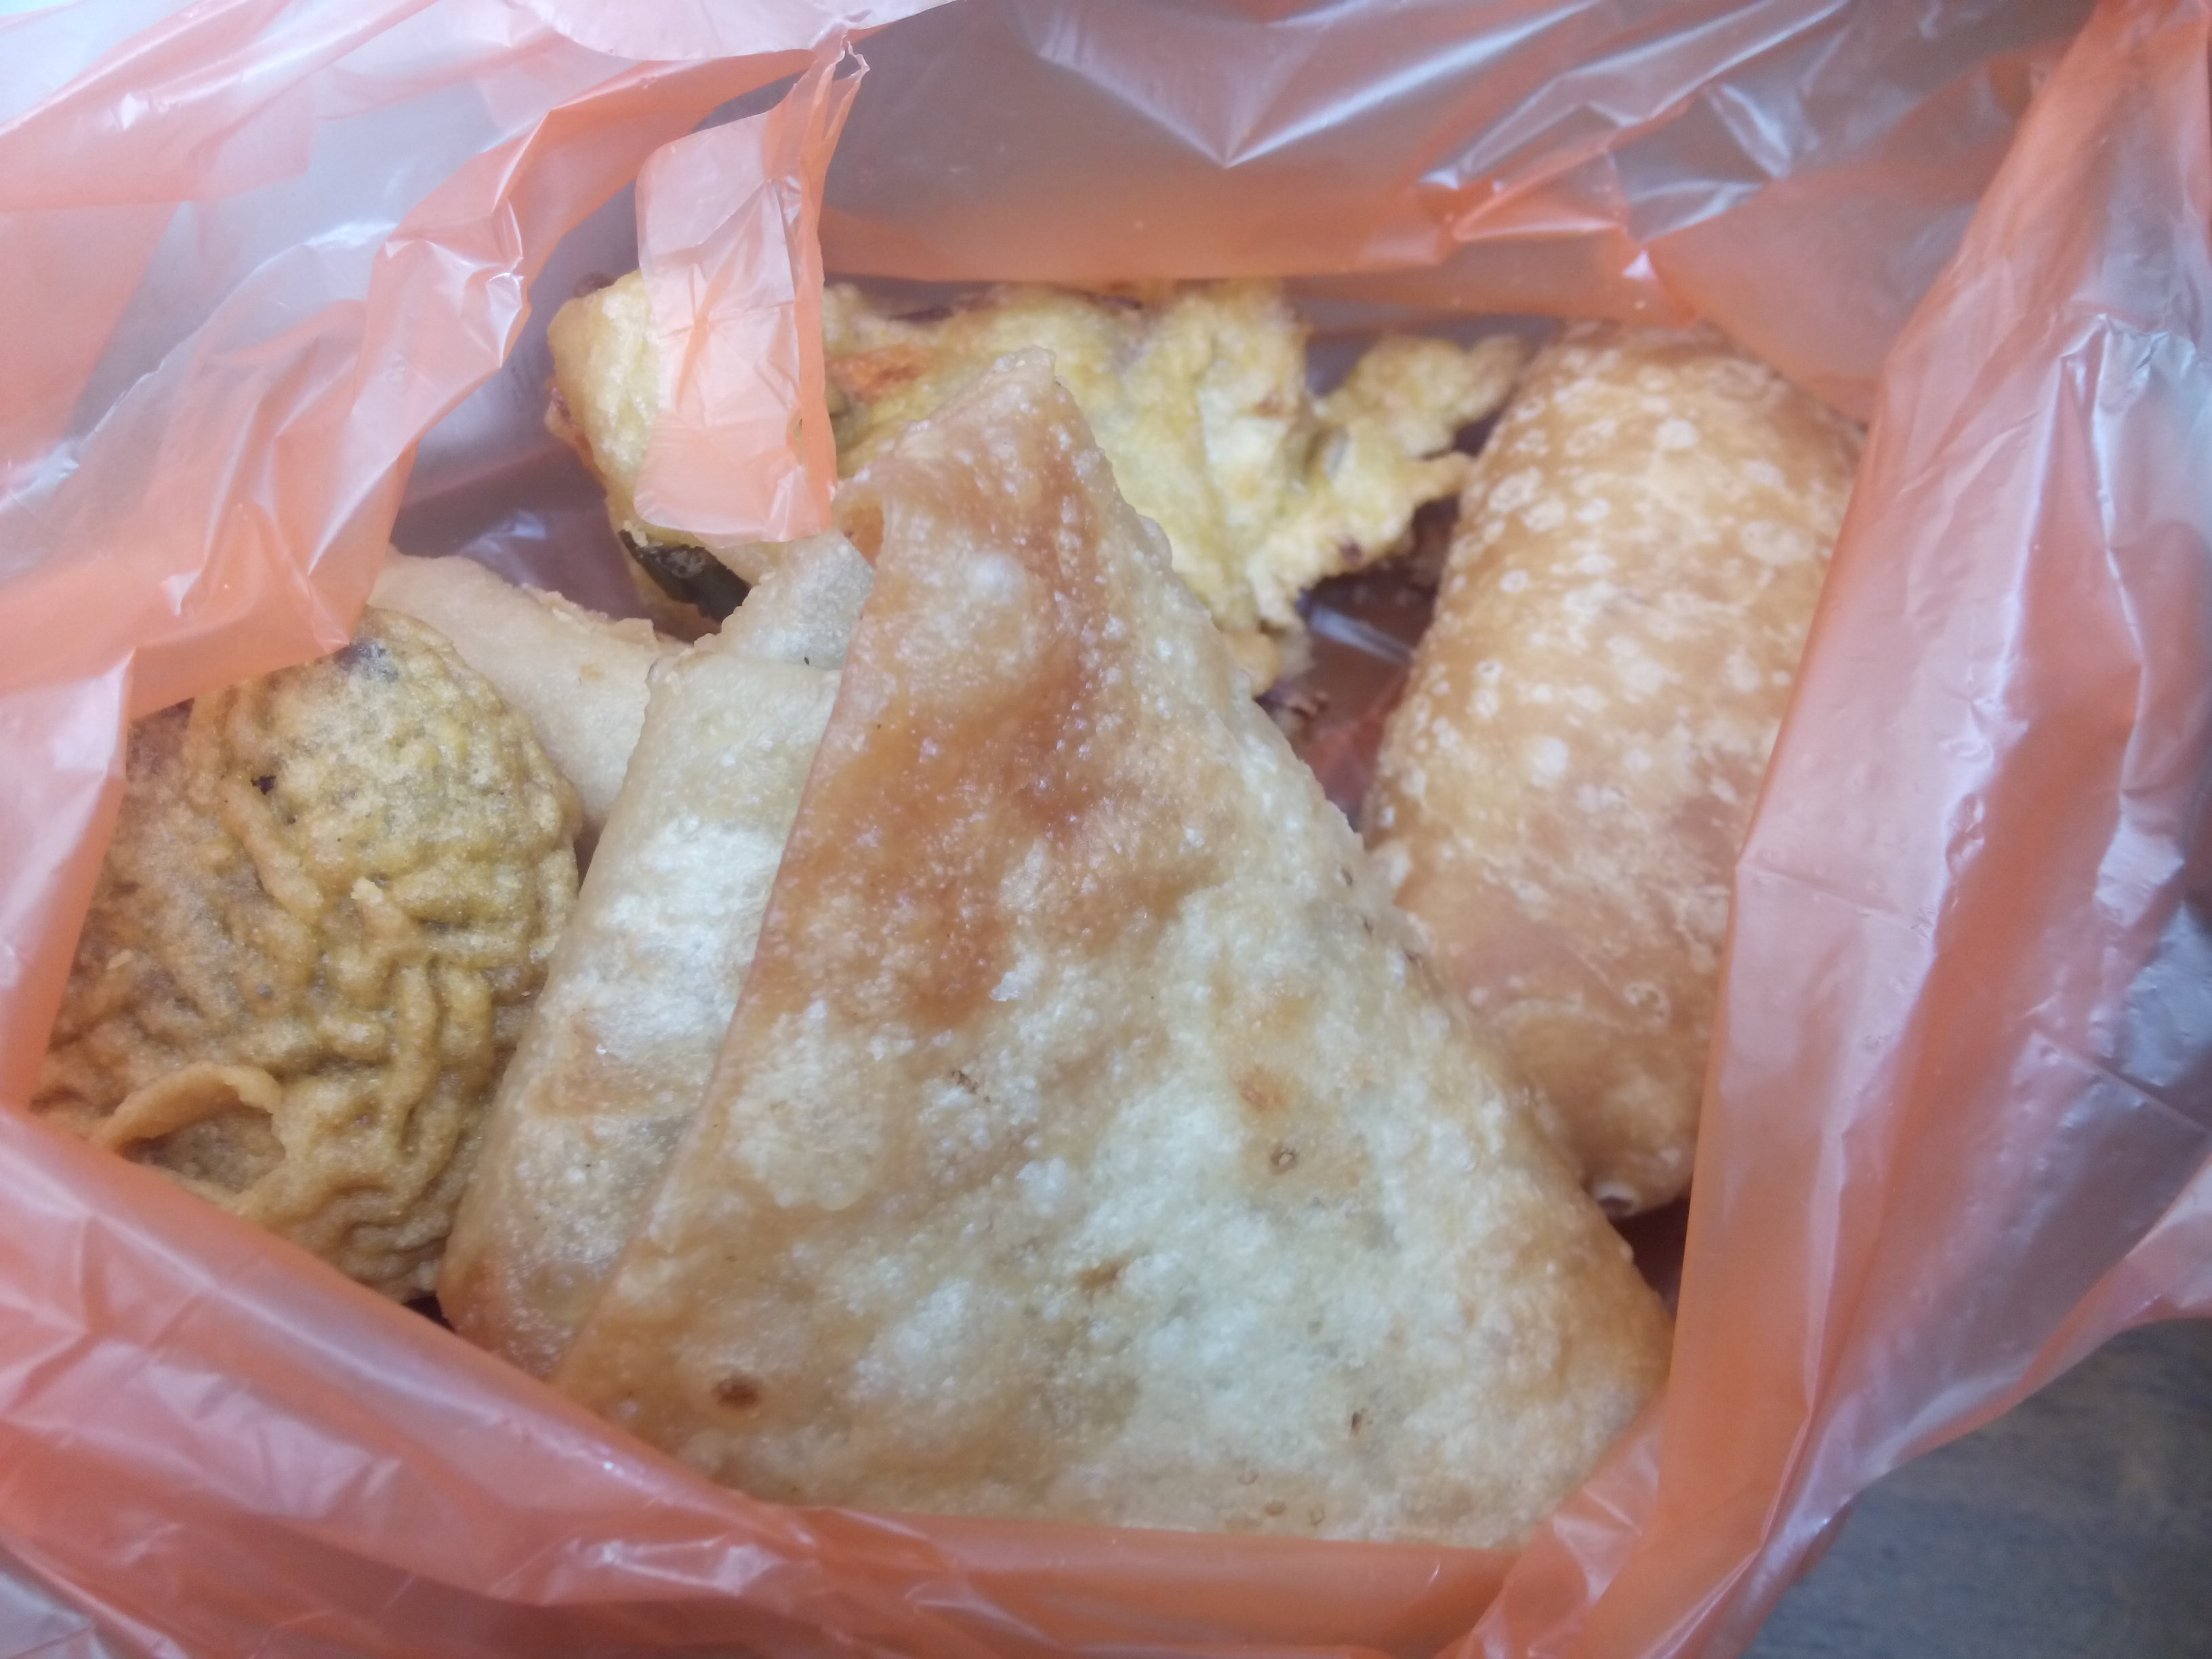 Fried Indian food in a plastic bag